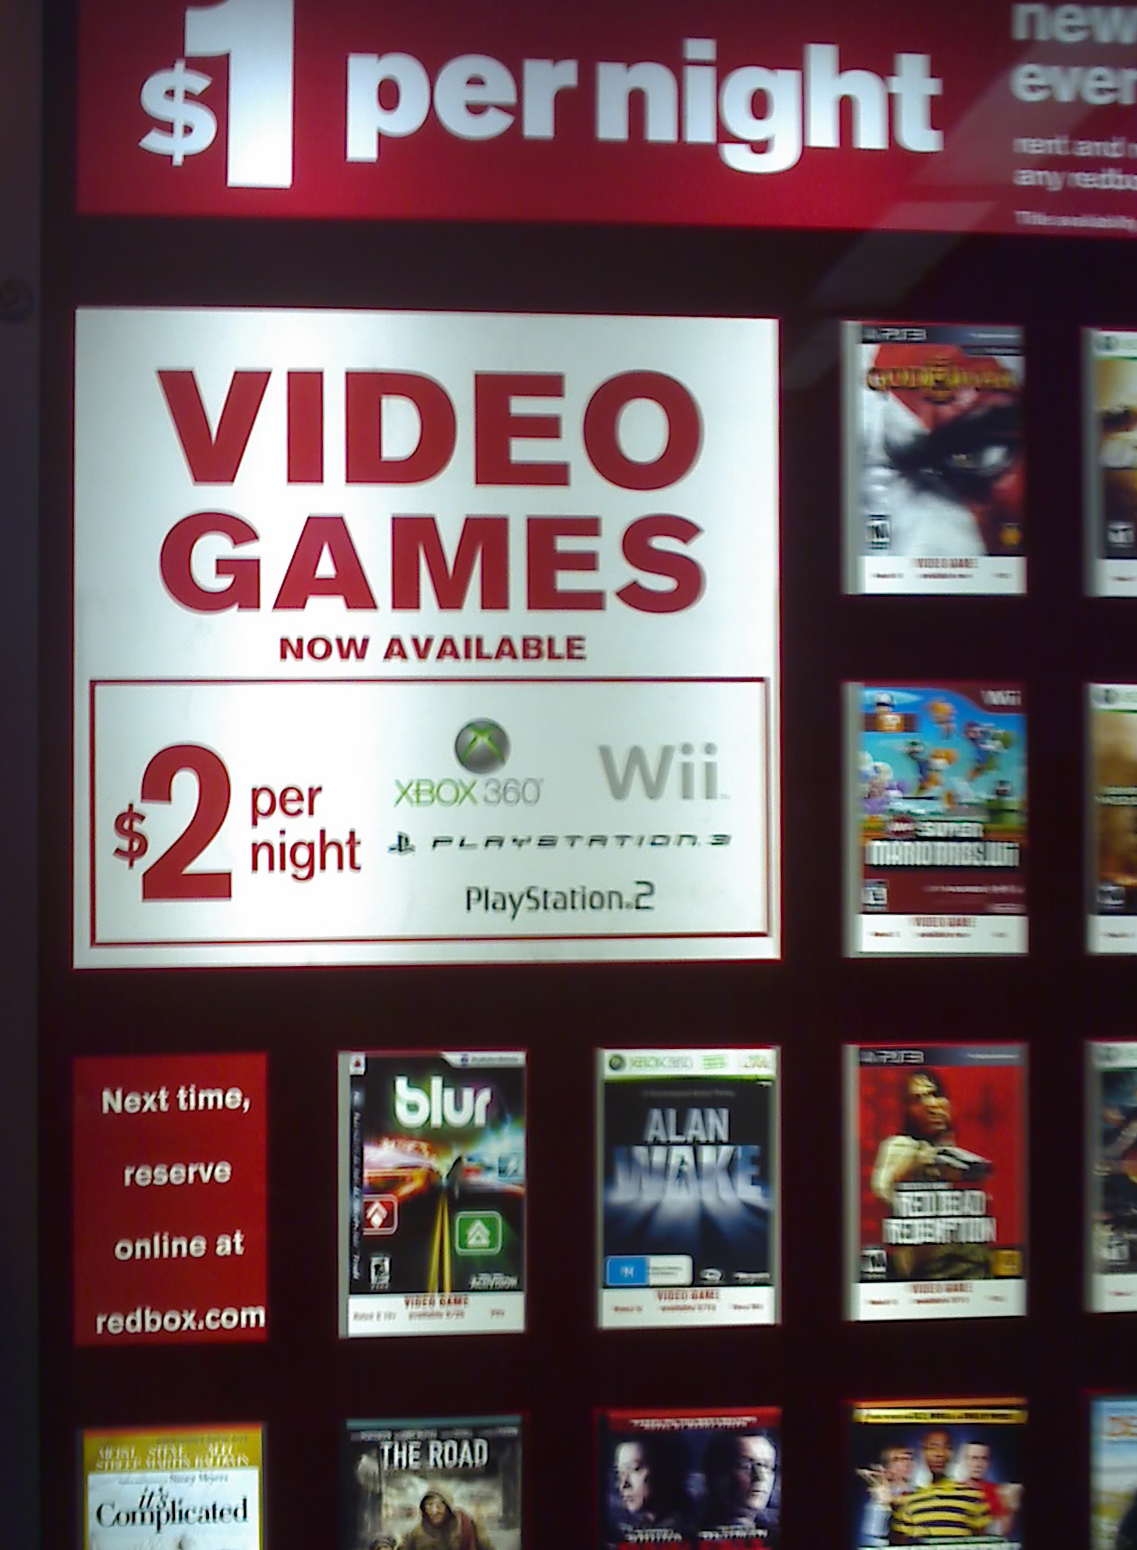 Redbox allows people to rent DVDs and video games at kiosks outside of businesses such as convenience and grocery stores and restaurants 24 hours a day.